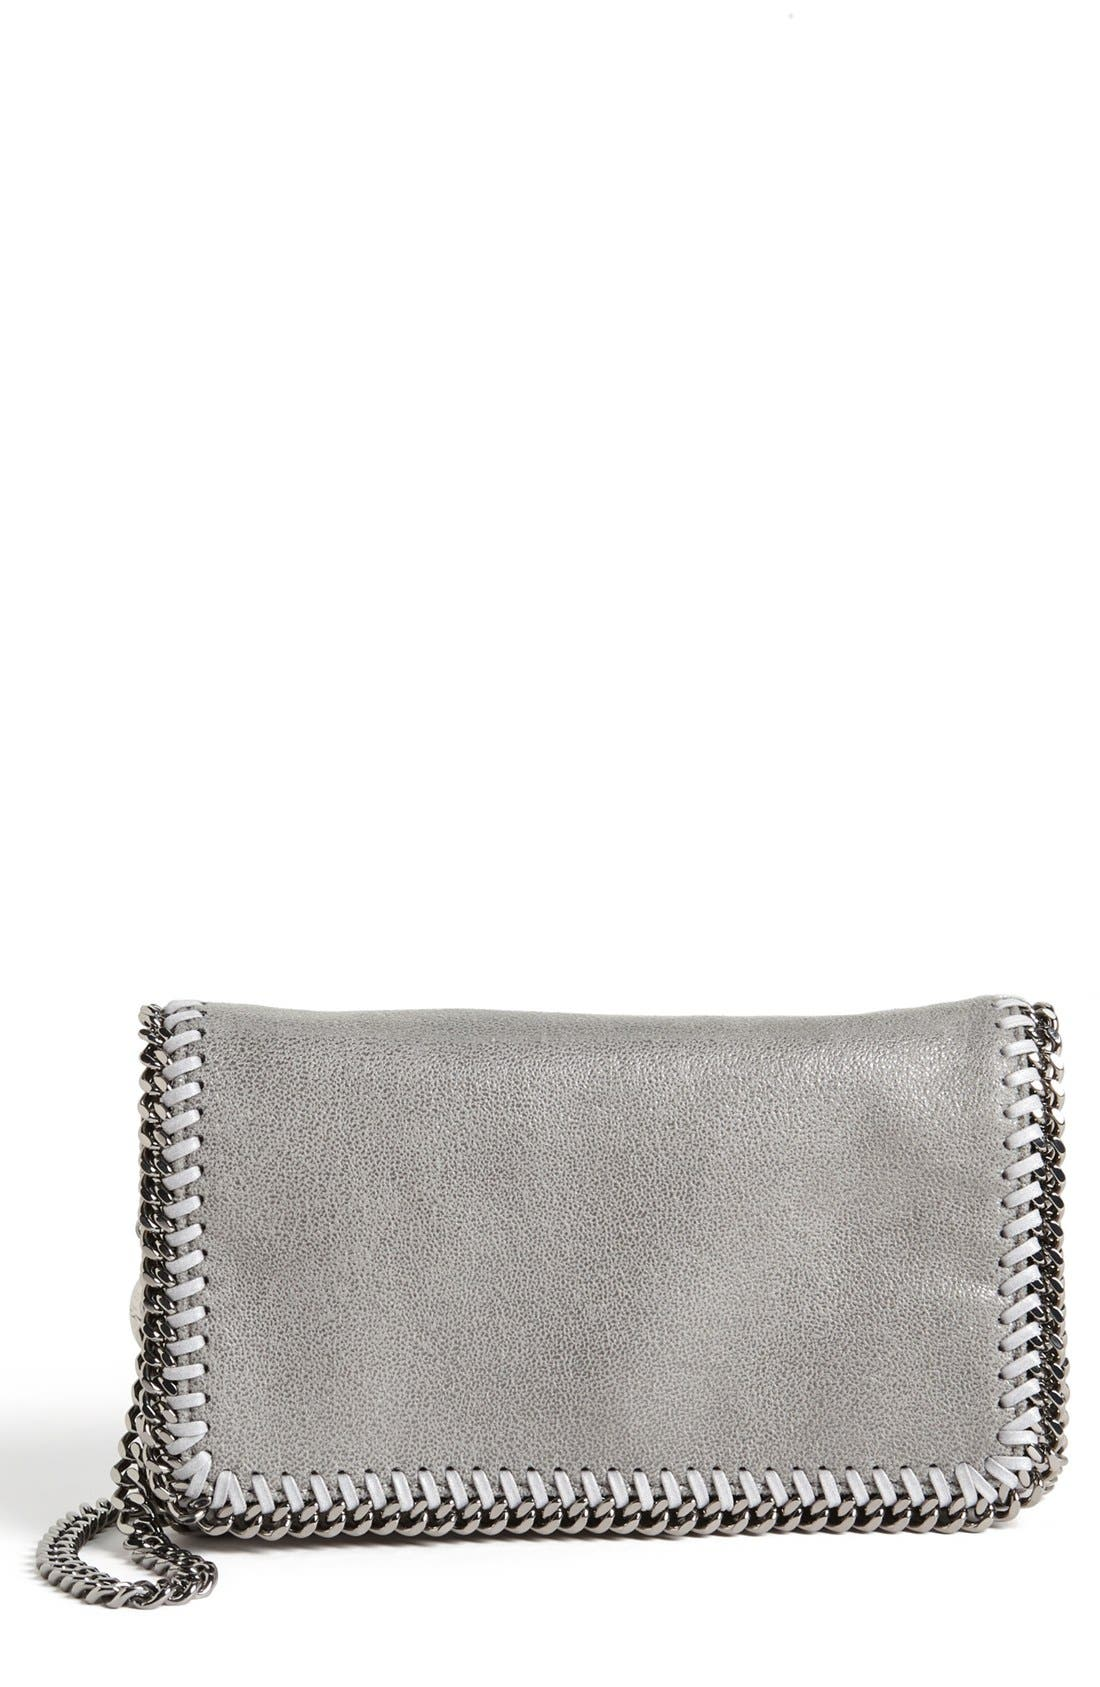 Main Image - Stella McCartney 'Falabella - Shaggy Deer' Faux Leather Crossbody Bag